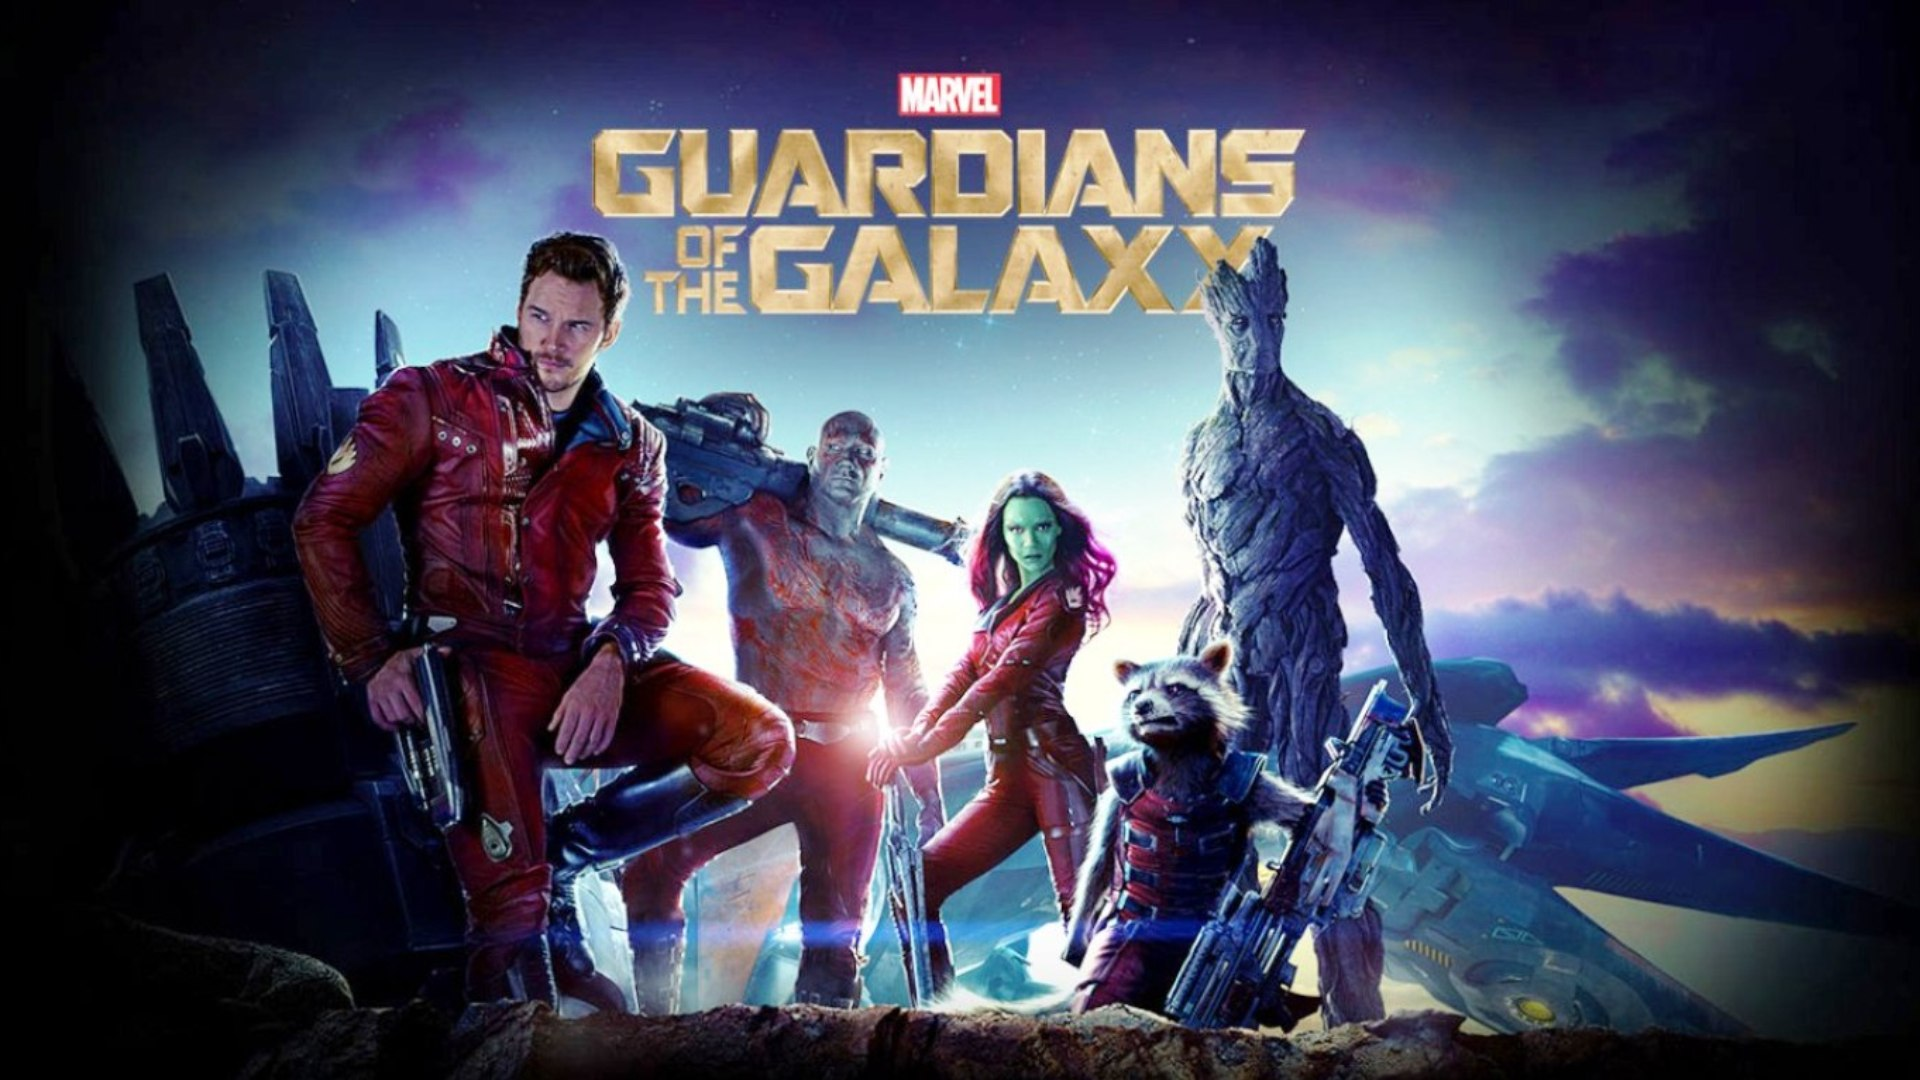 Pin Hd Guardians Of The Galaxy Movie Wallpaper on Pinterest